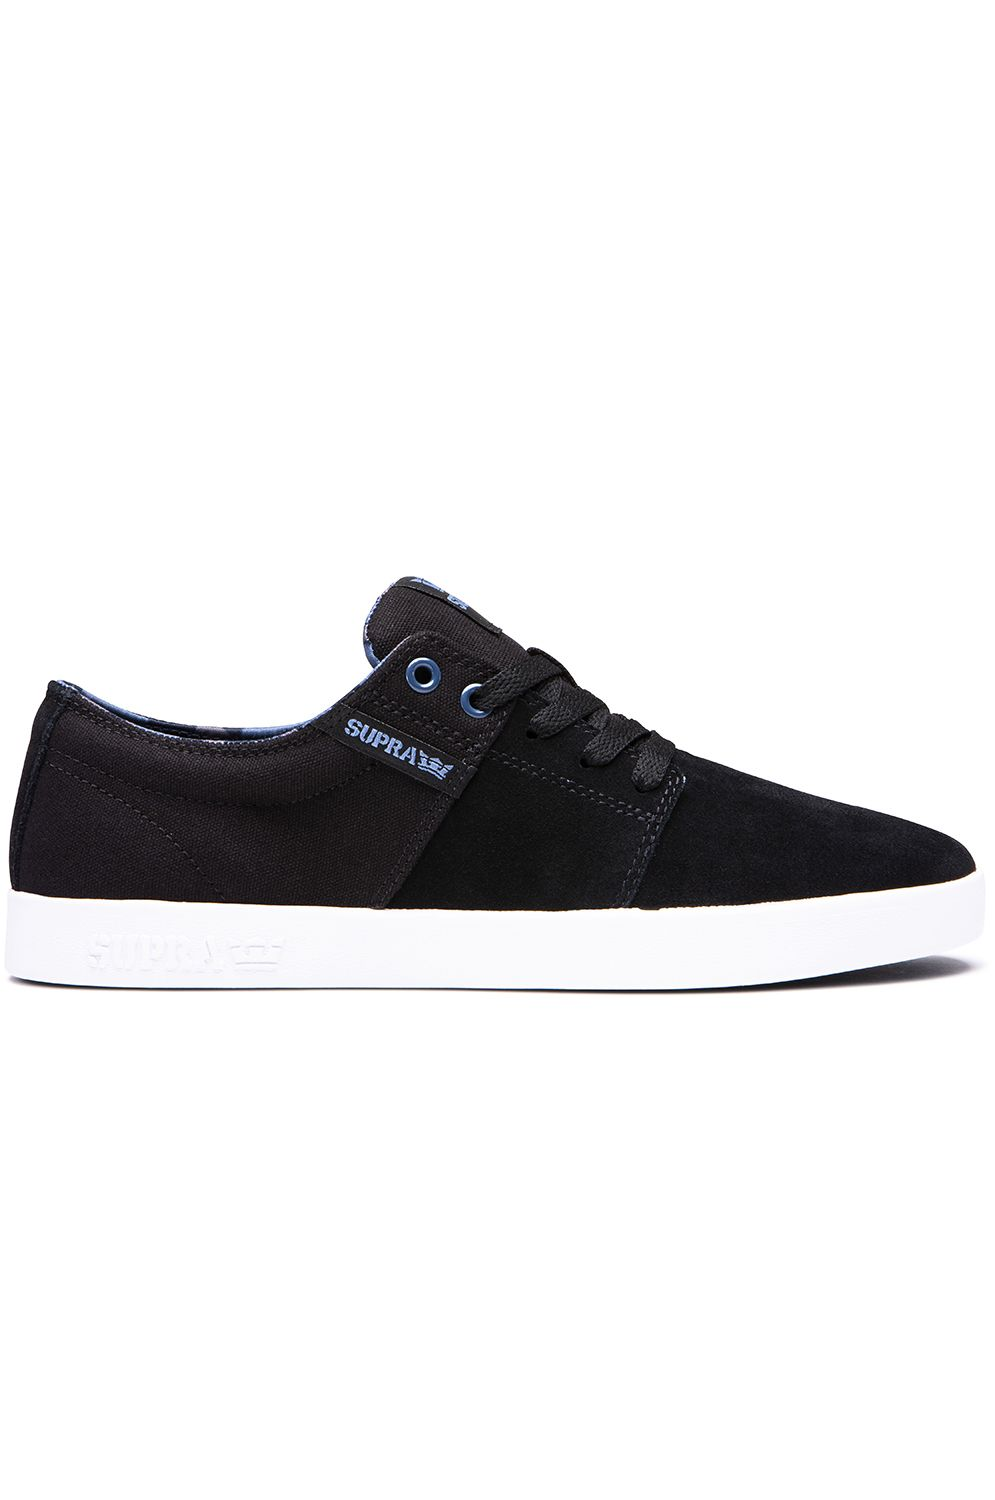 Supra Shoes STACKS II Black/Bering/White